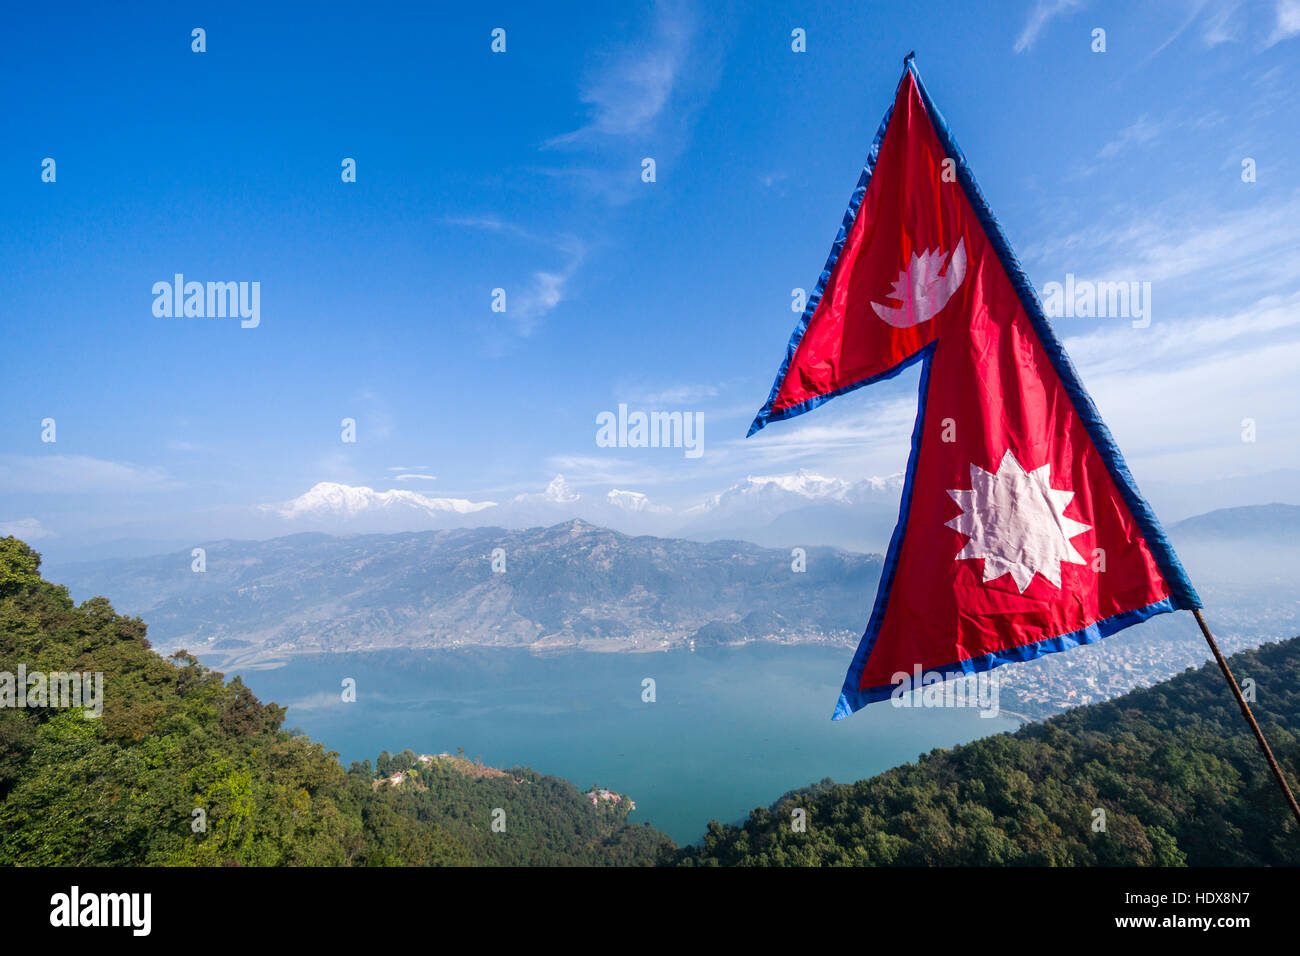 The nepali national flag is weaving high above the Phewa Lake and Pokhara, Annapurna mountains in the distance Stock Photo